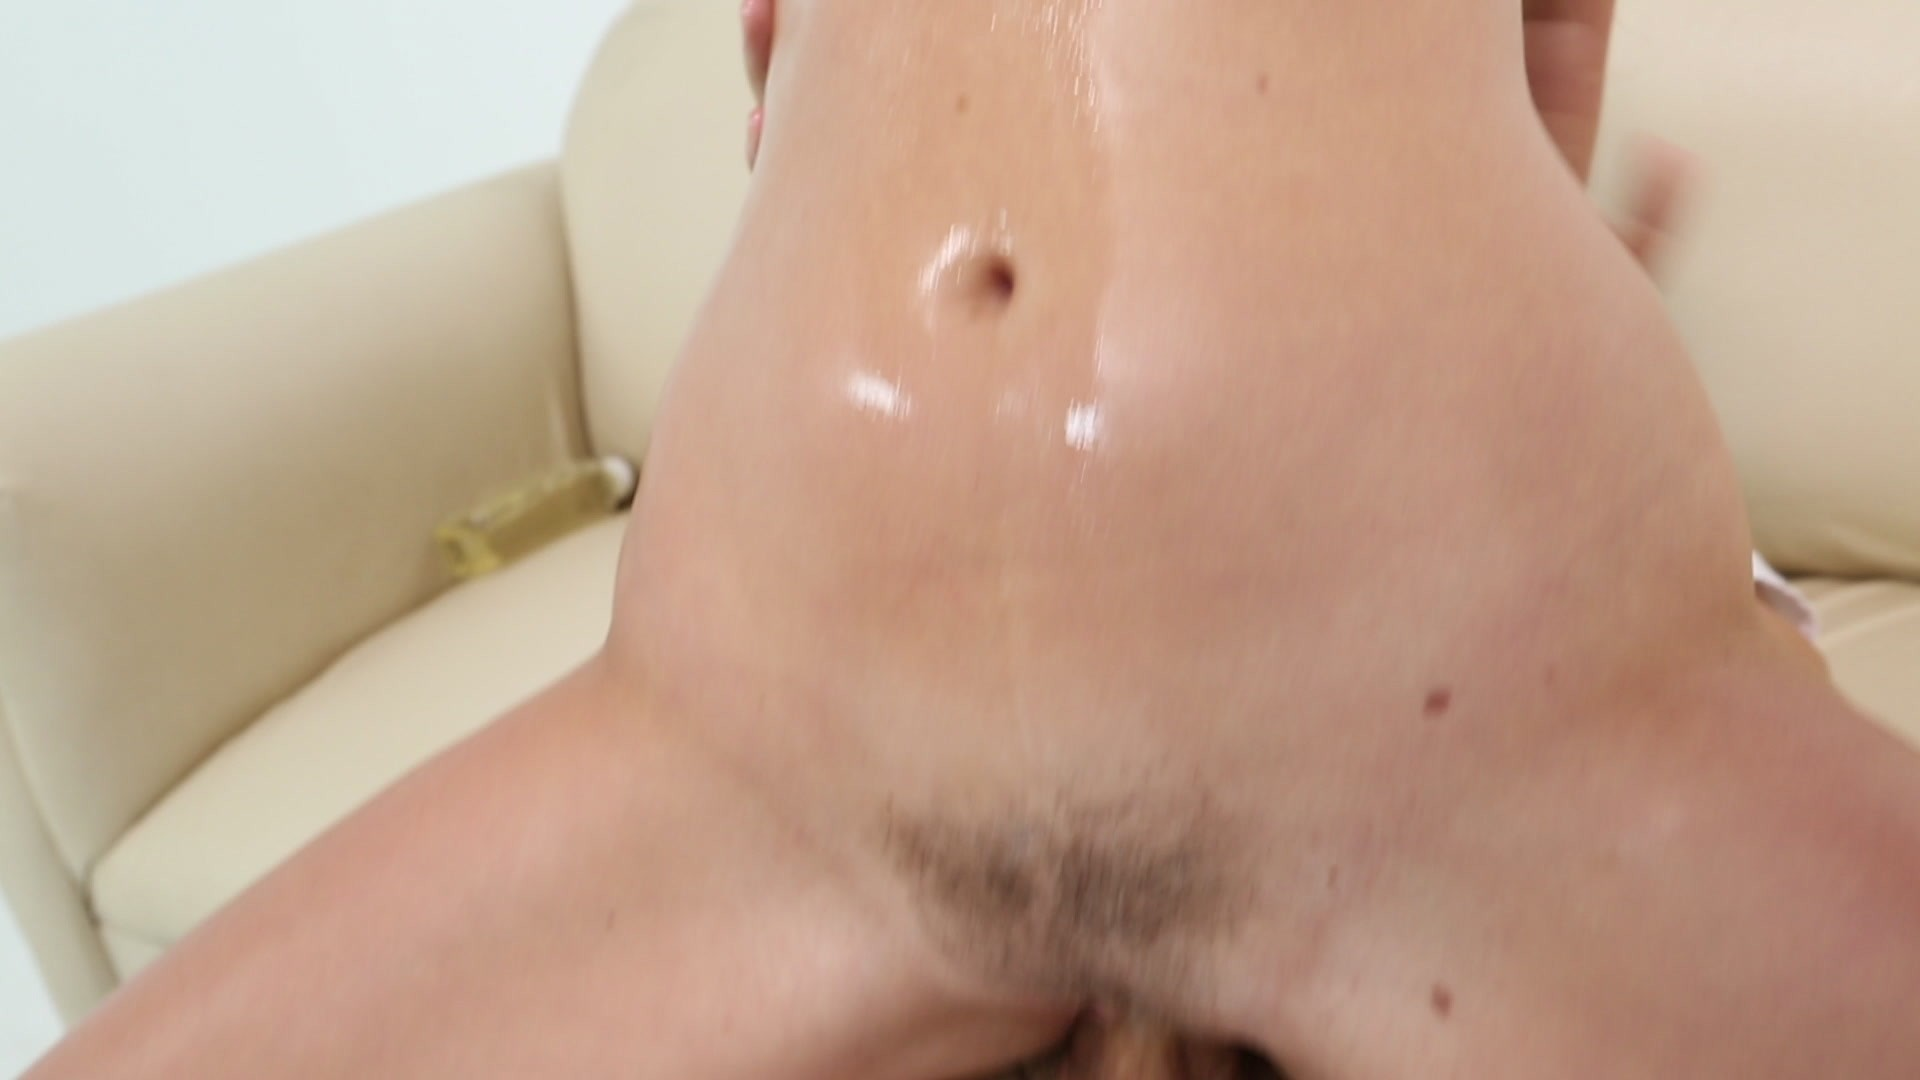 big wet tits videos on demand adult dvd empire